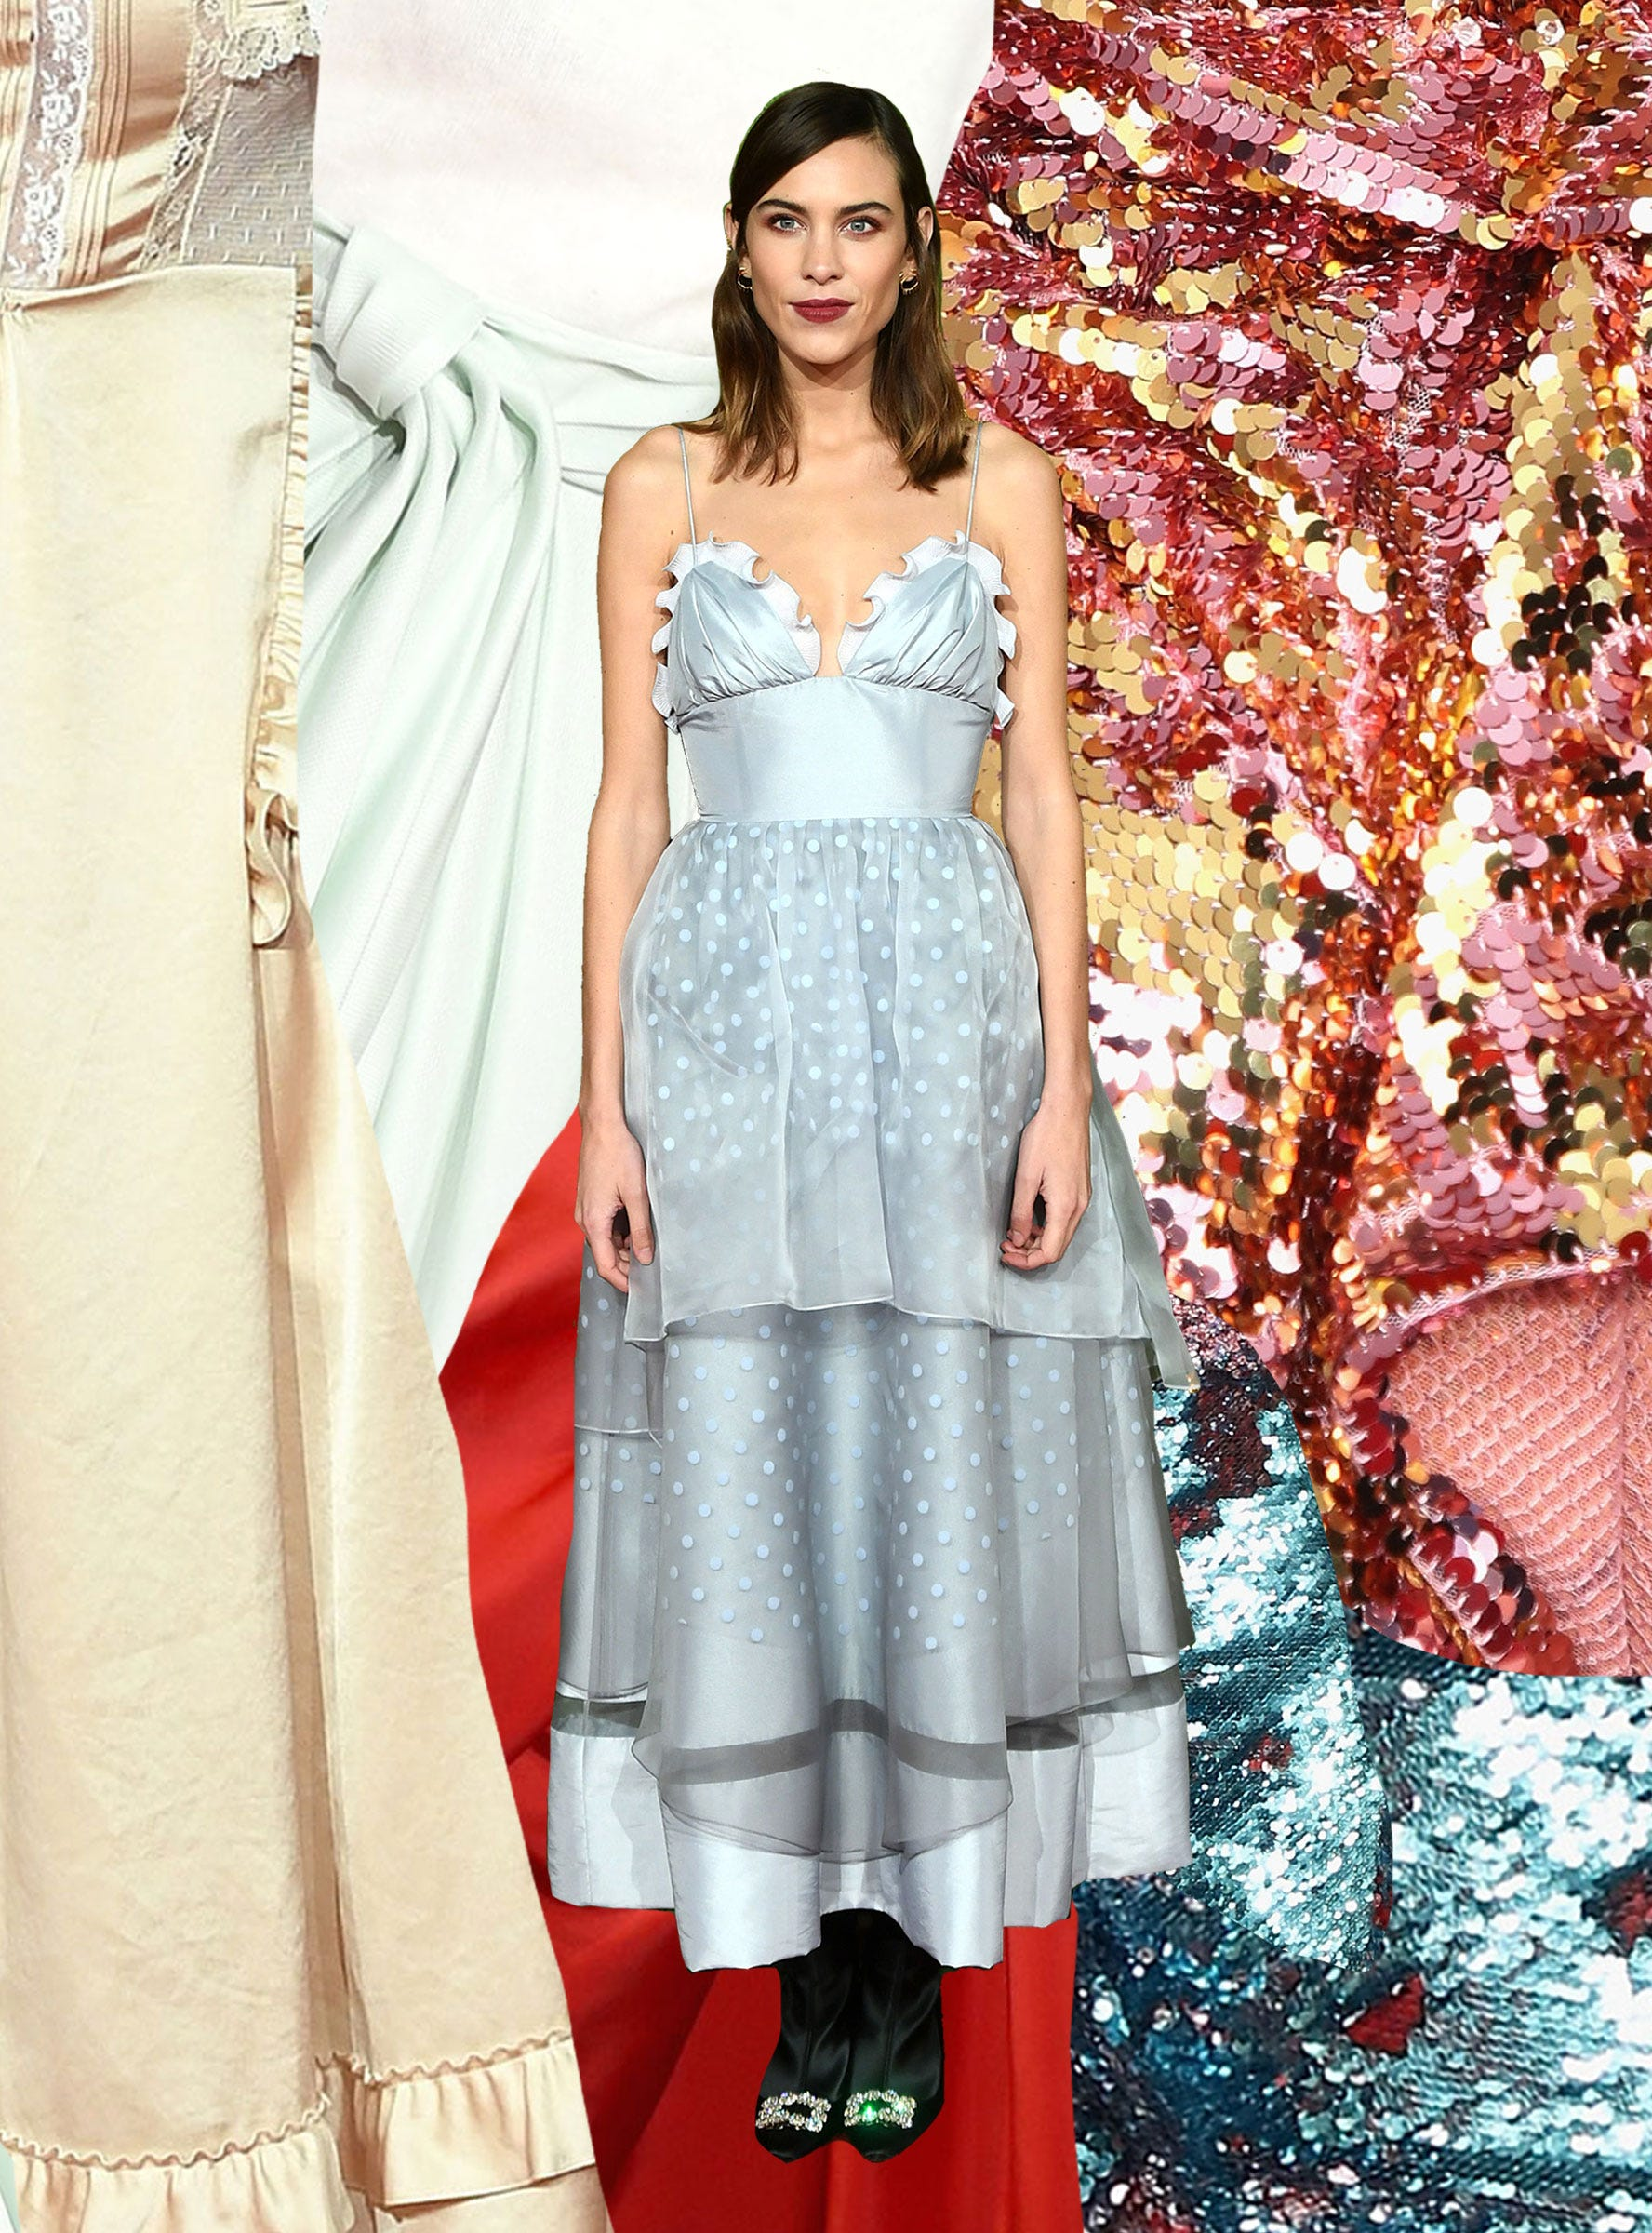 How To Wear Sequins - Sparkly Dresses, Tops, Shoes